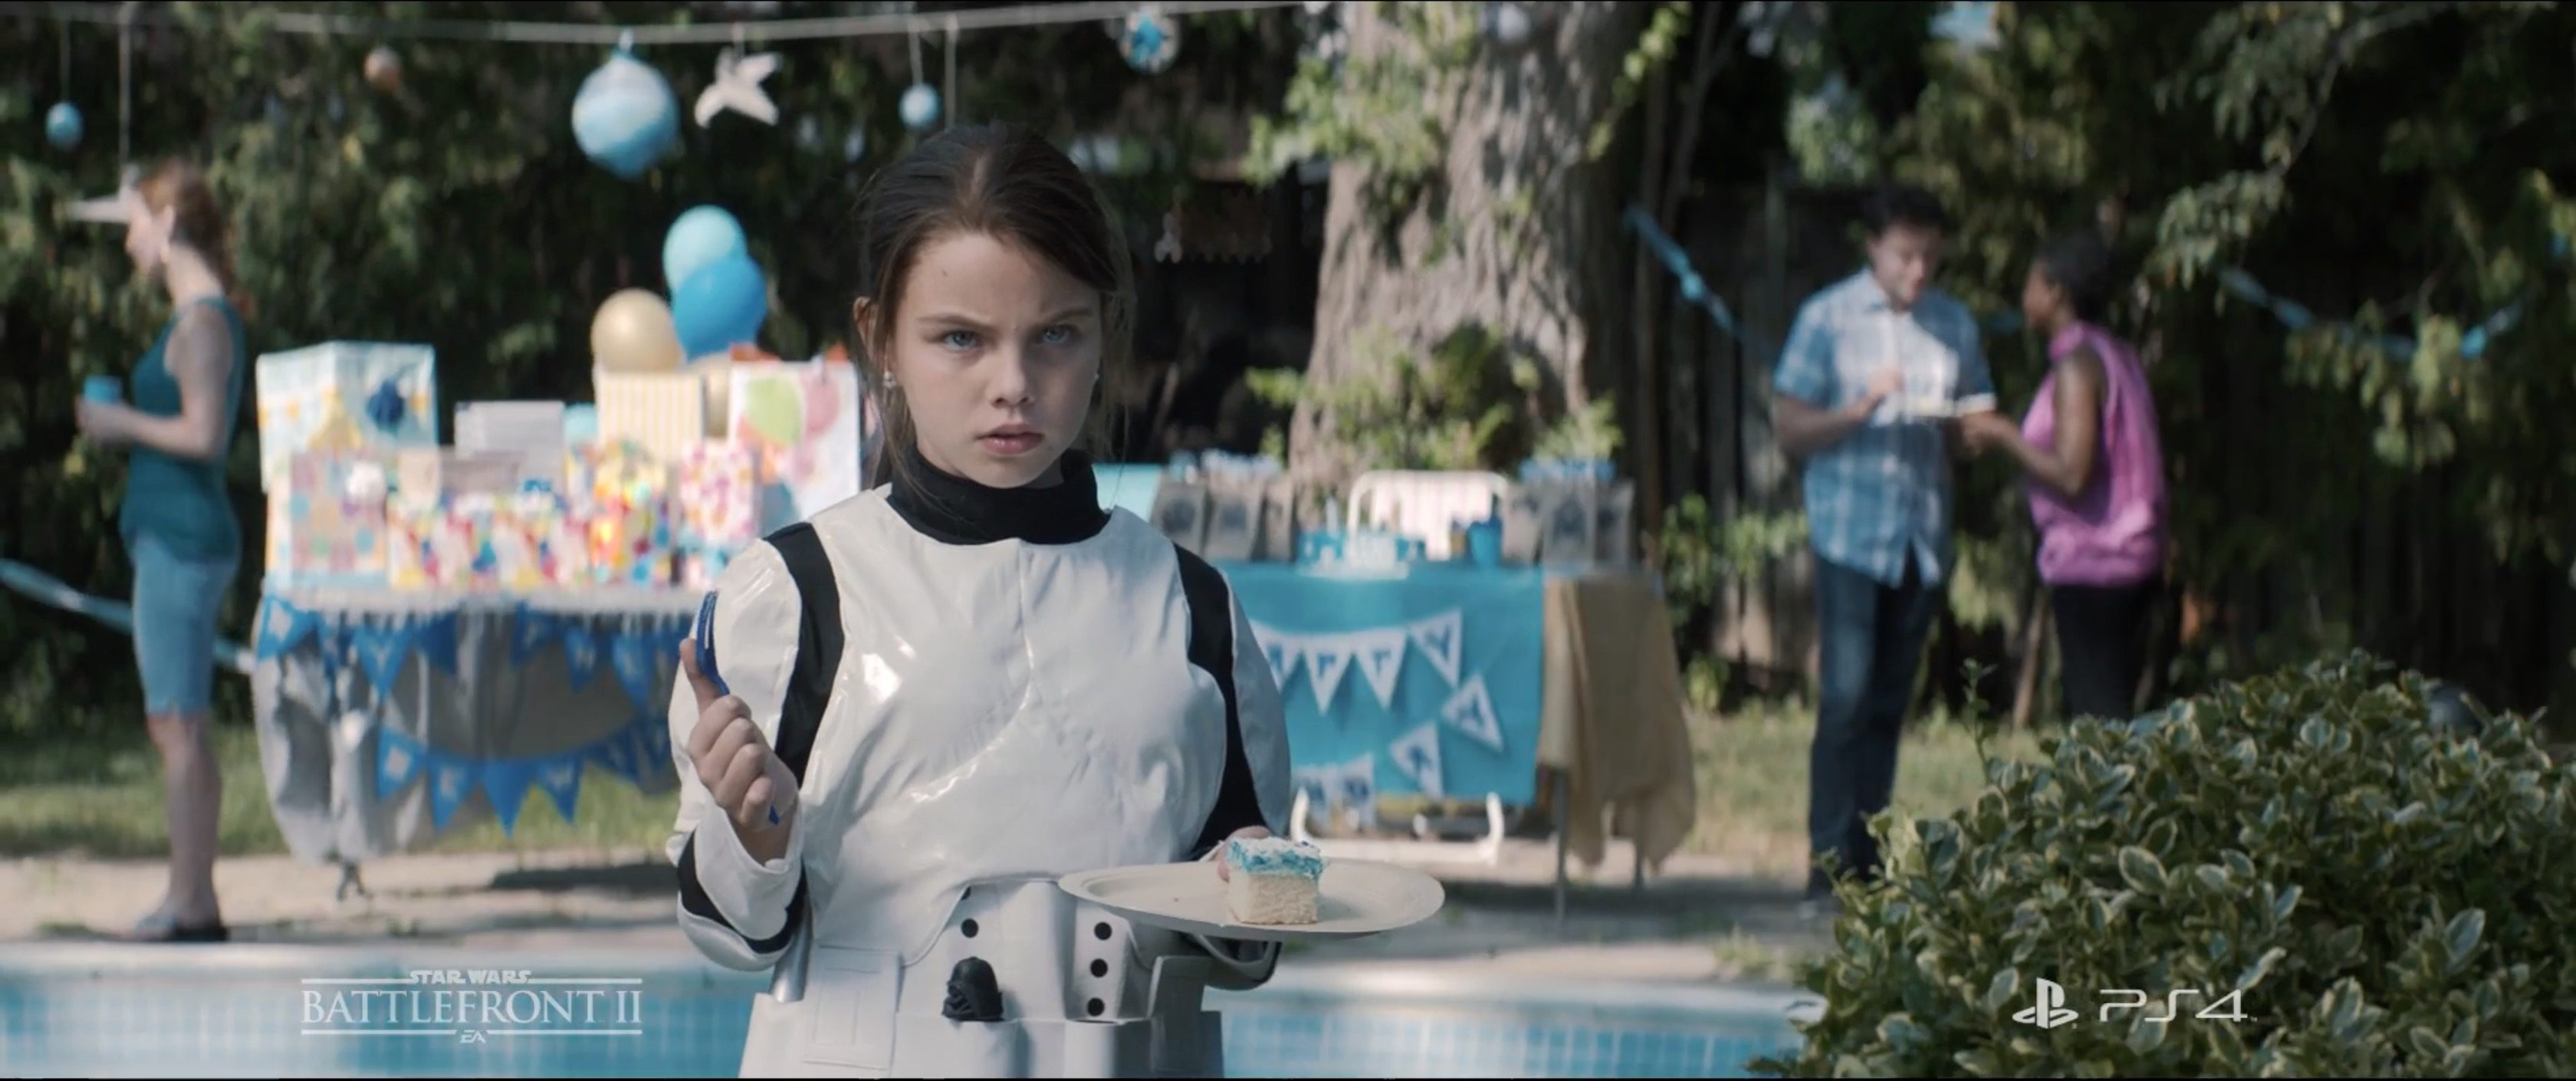 Star Wars Battlefront II Live Action Trailer: Rivalry